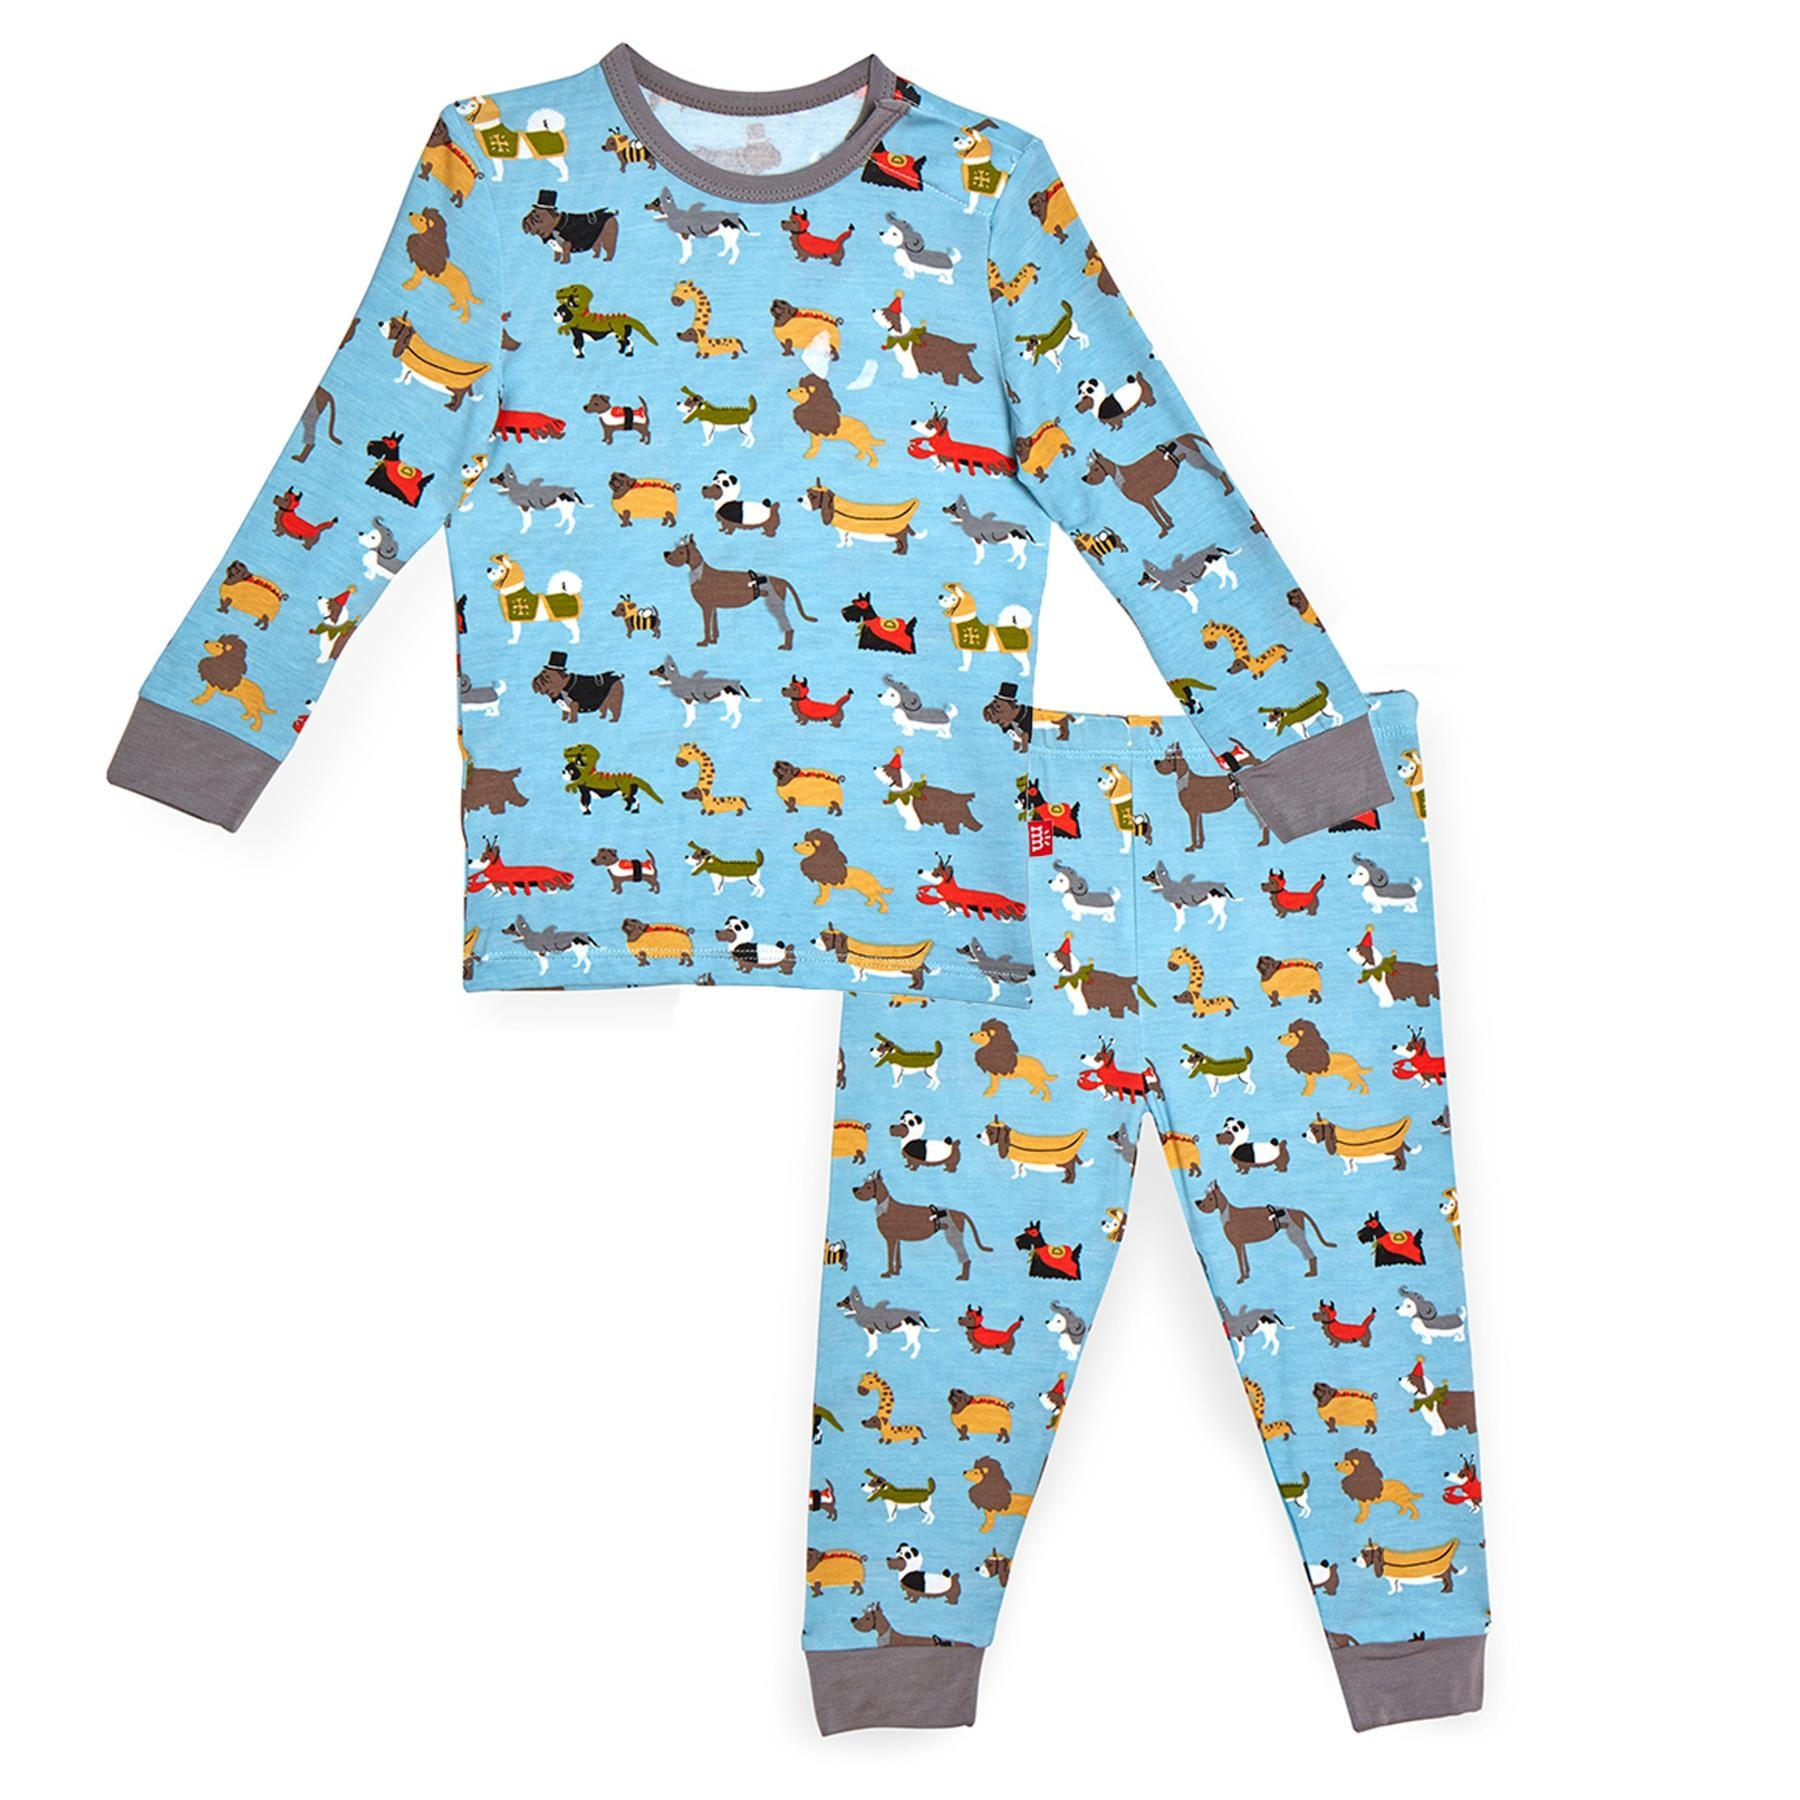 Magnetic Me Magnetic Me Modal Toddler 2-piece PJ Set - In-Dog-Nito